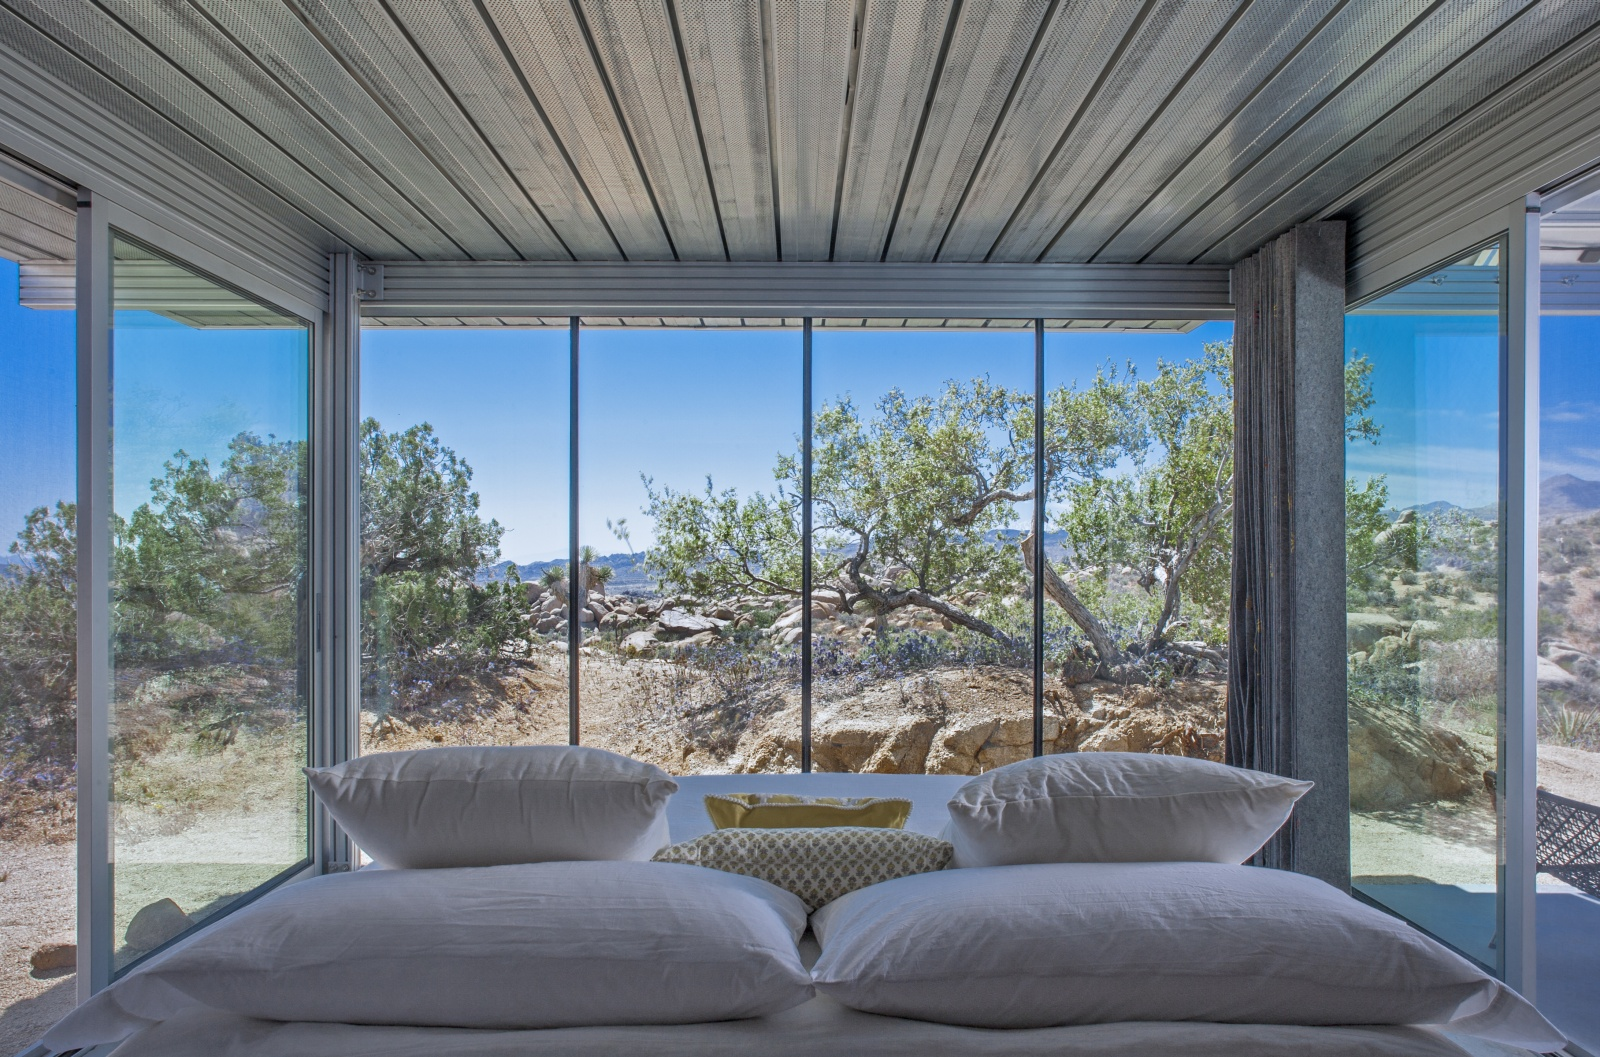 Off-Grid itHouse master bedroom looking outside windows